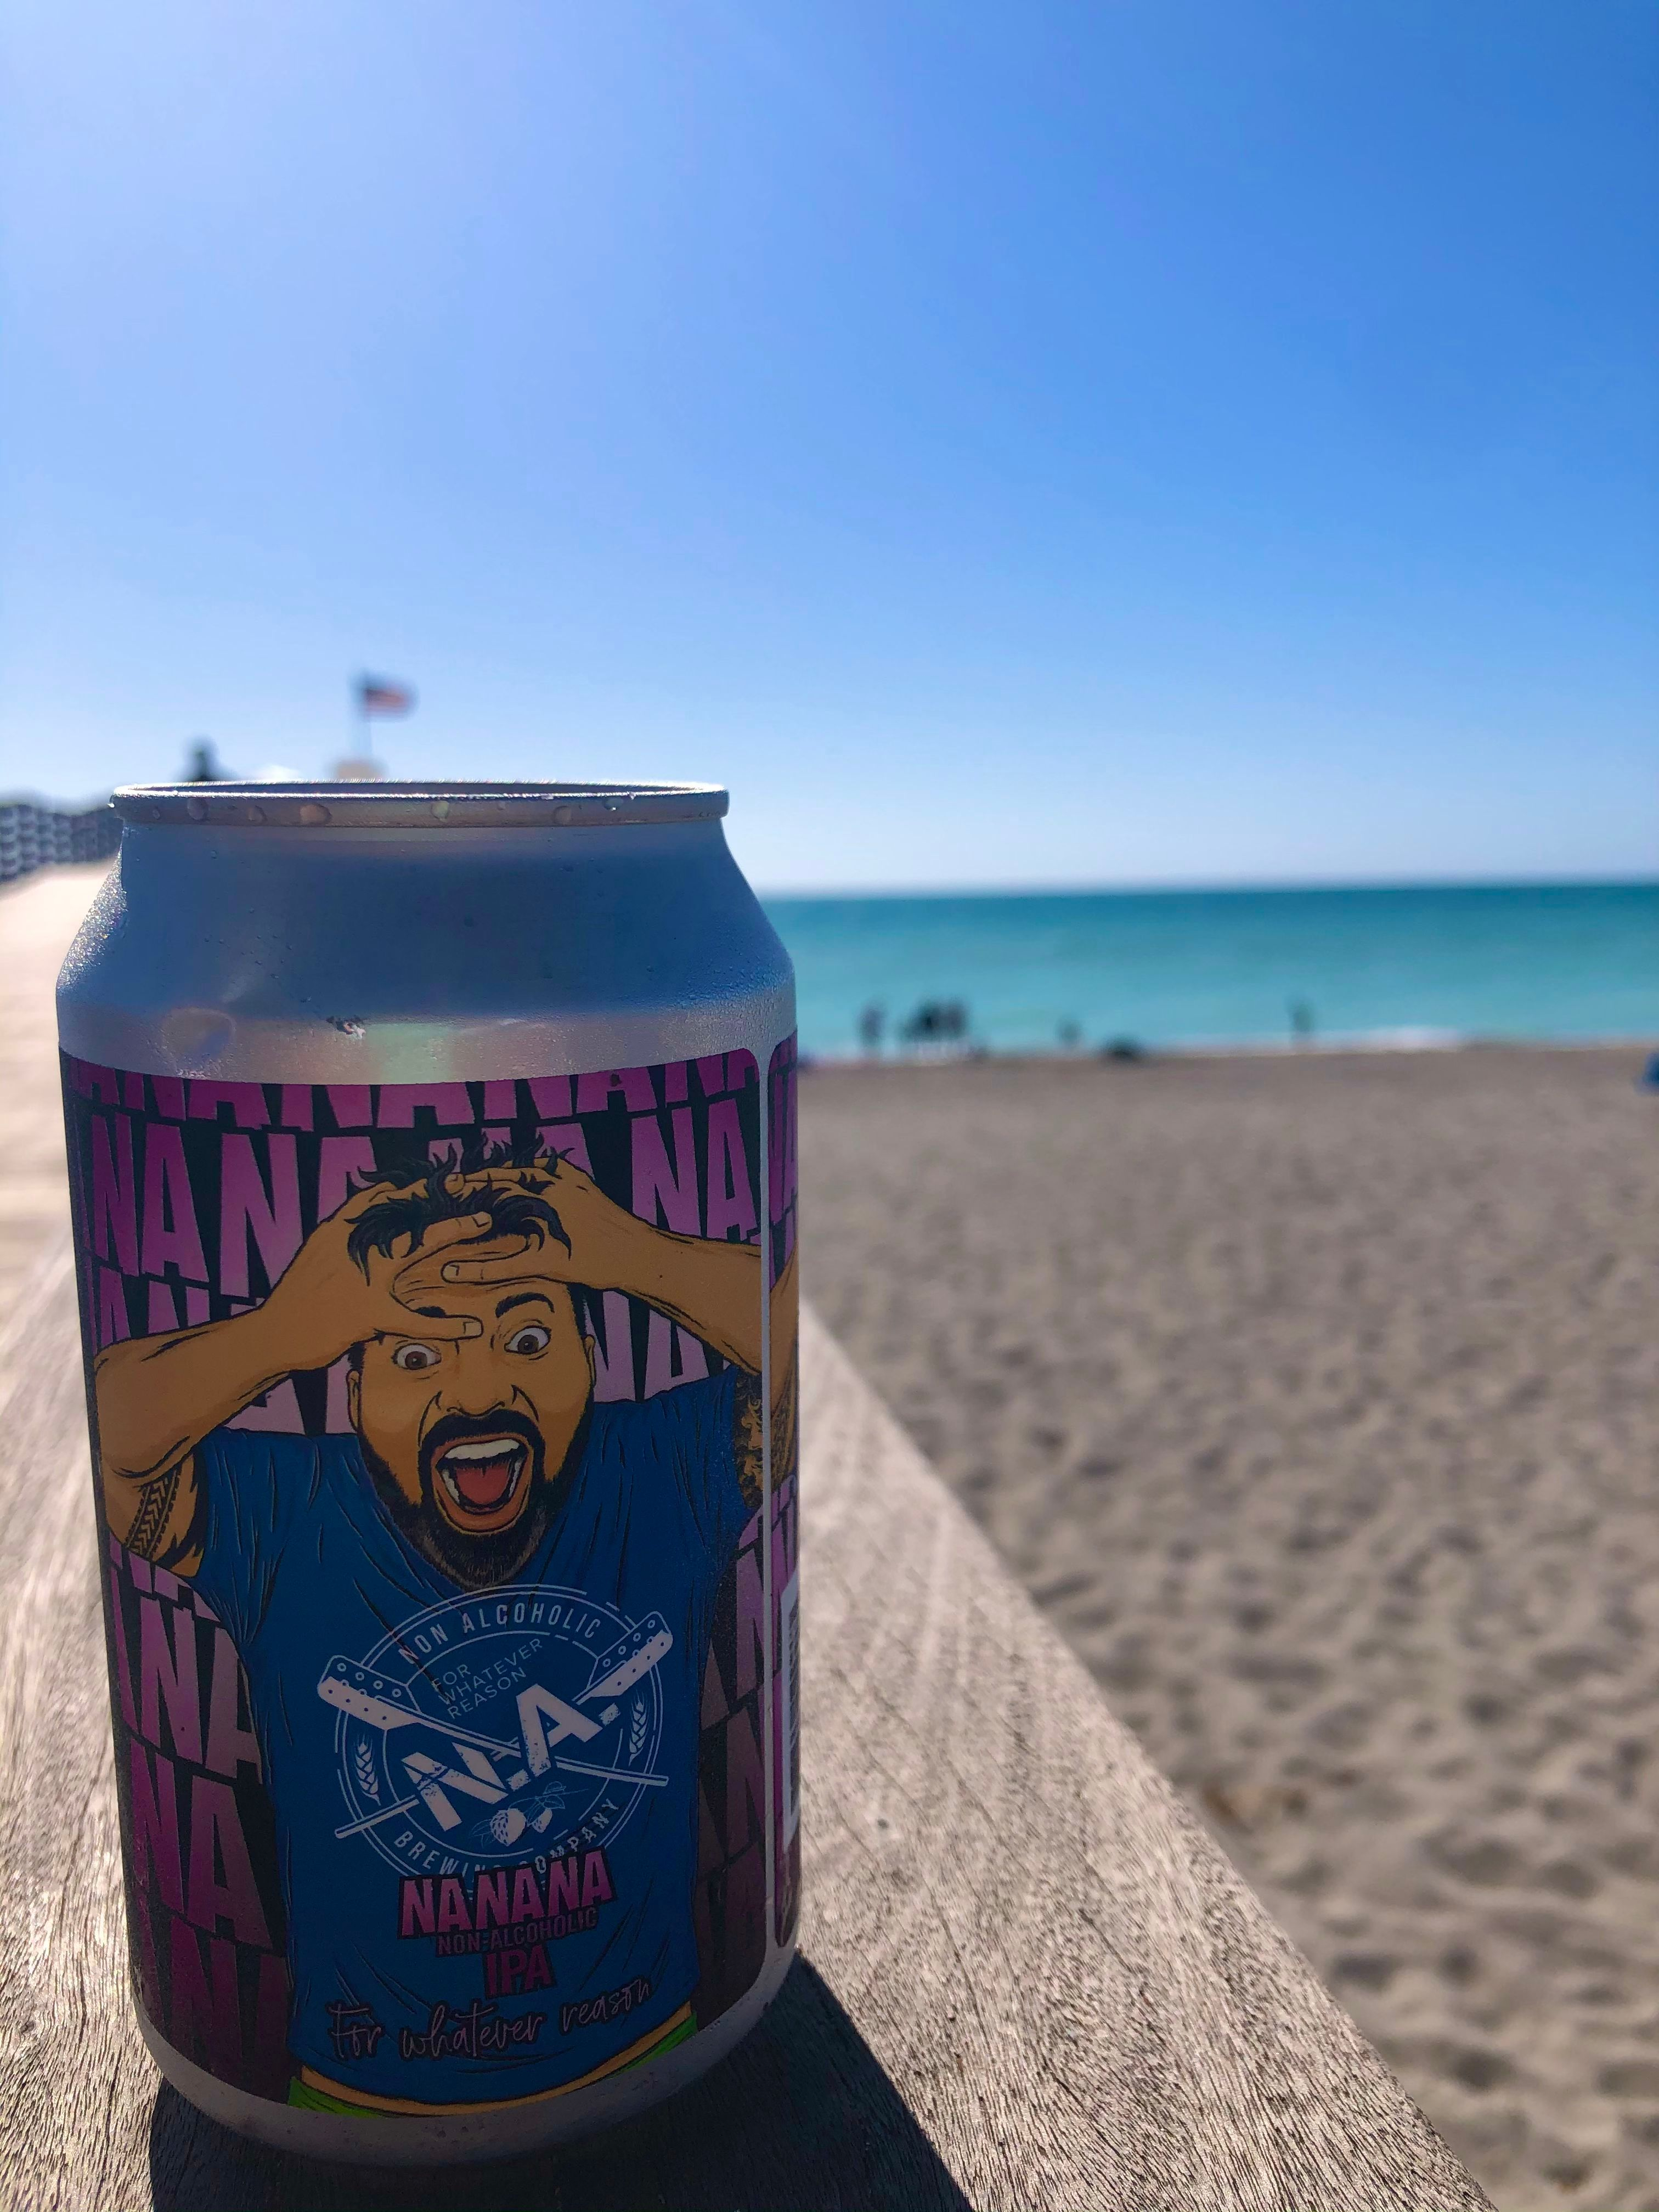 Introducing Florida's First Non-Alcoholic Craft Beer!